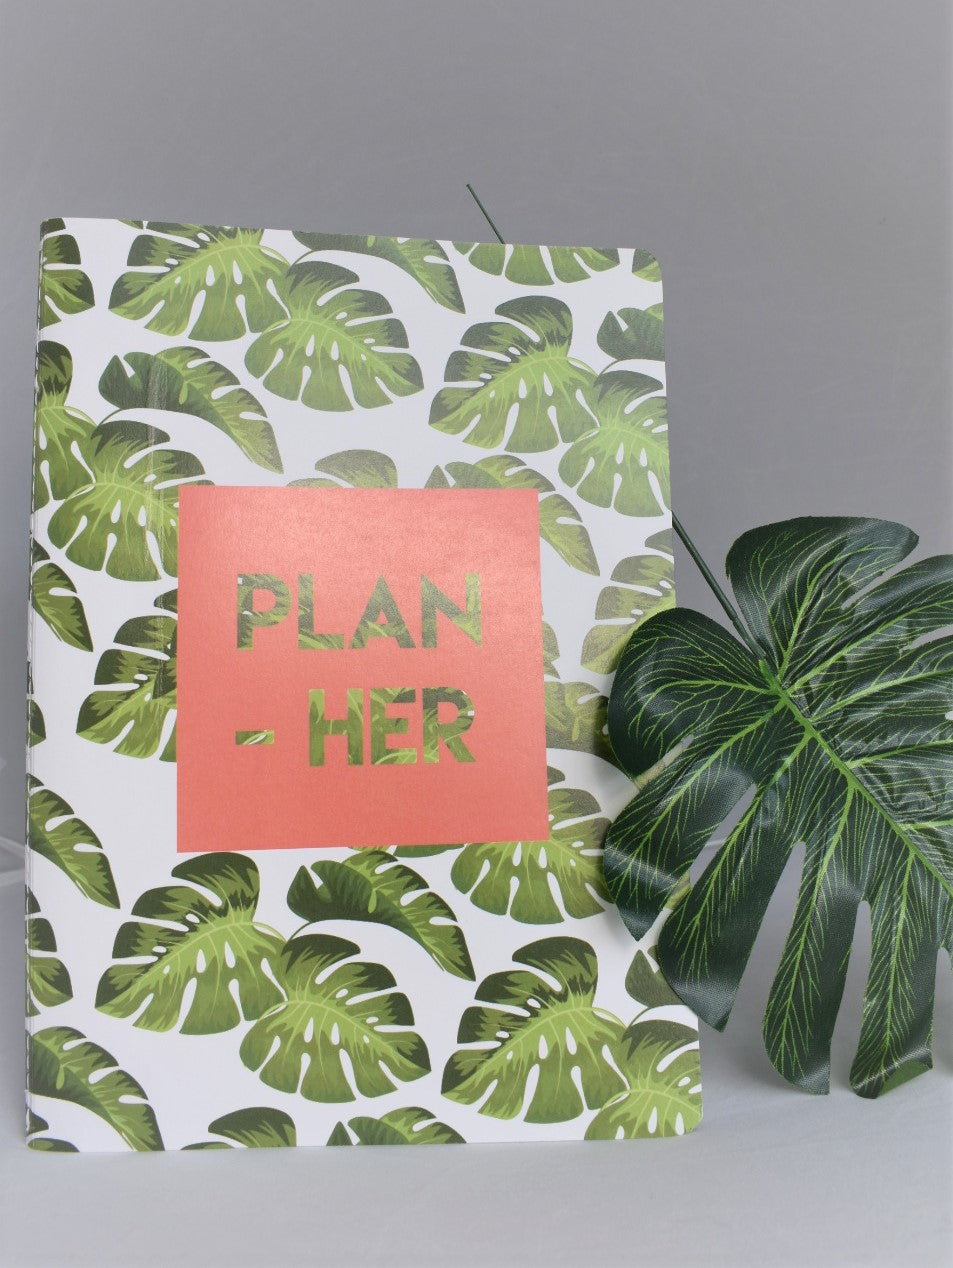 PLAN-HER Quarterly Planner (A4)